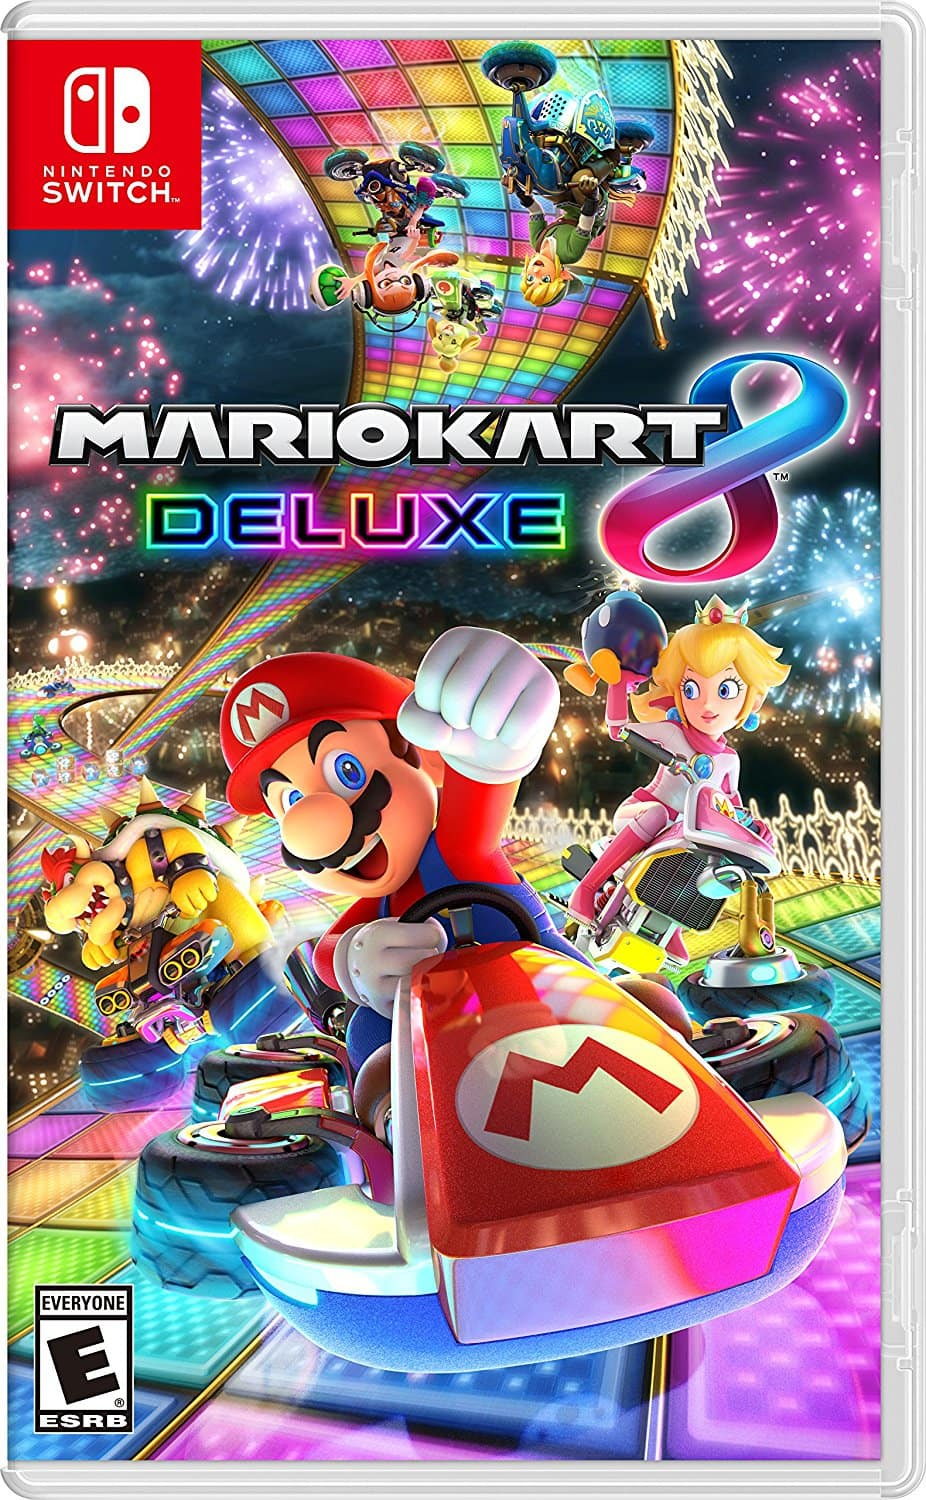 Many Nintendo Switch games on sale - many with free shipping on Amazon